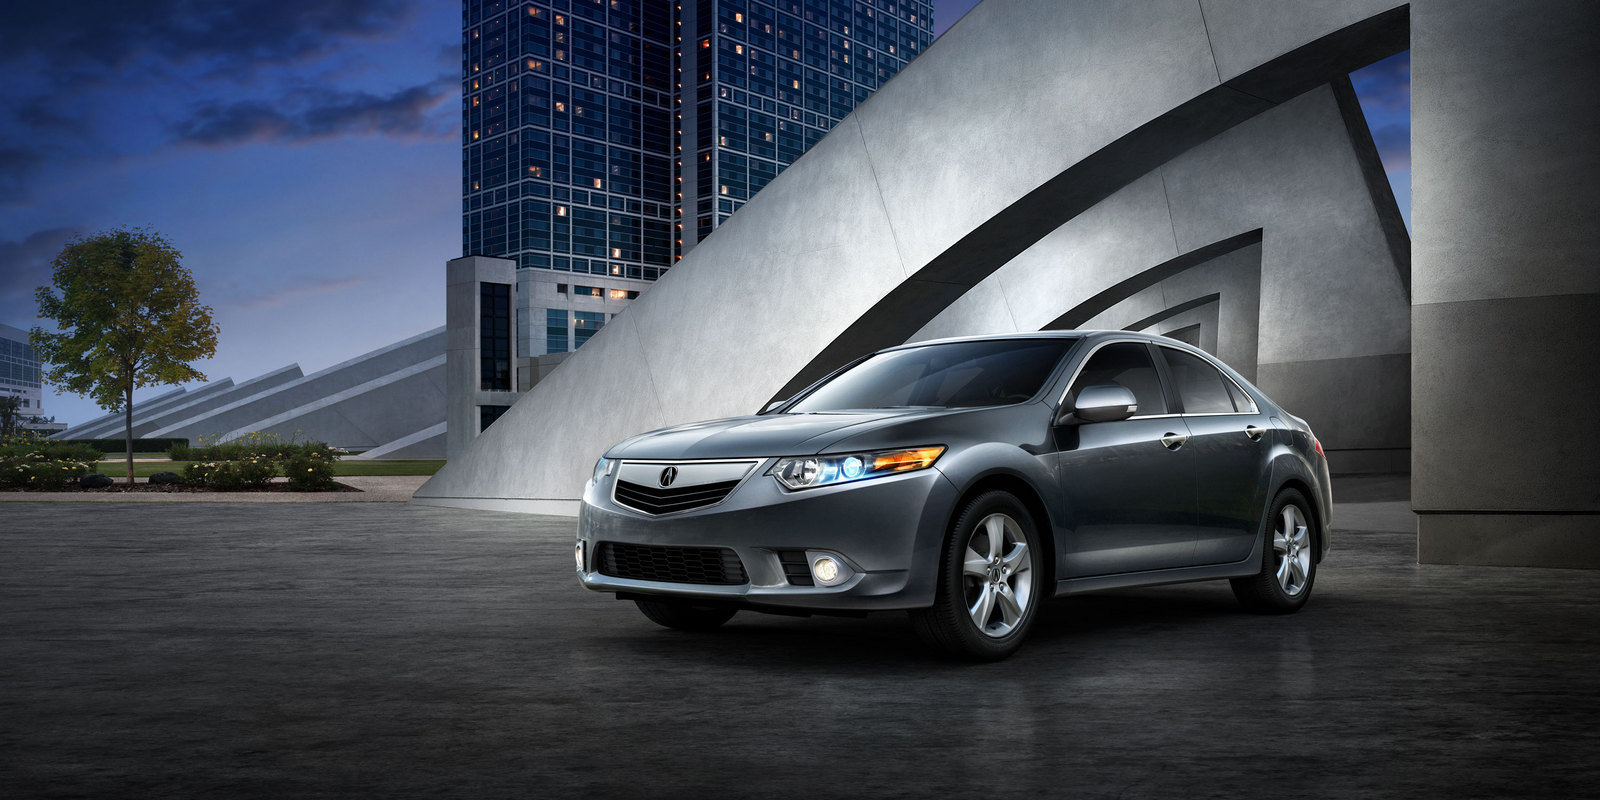 2013 acura tsx picture 510990 car review top speed. Black Bedroom Furniture Sets. Home Design Ideas